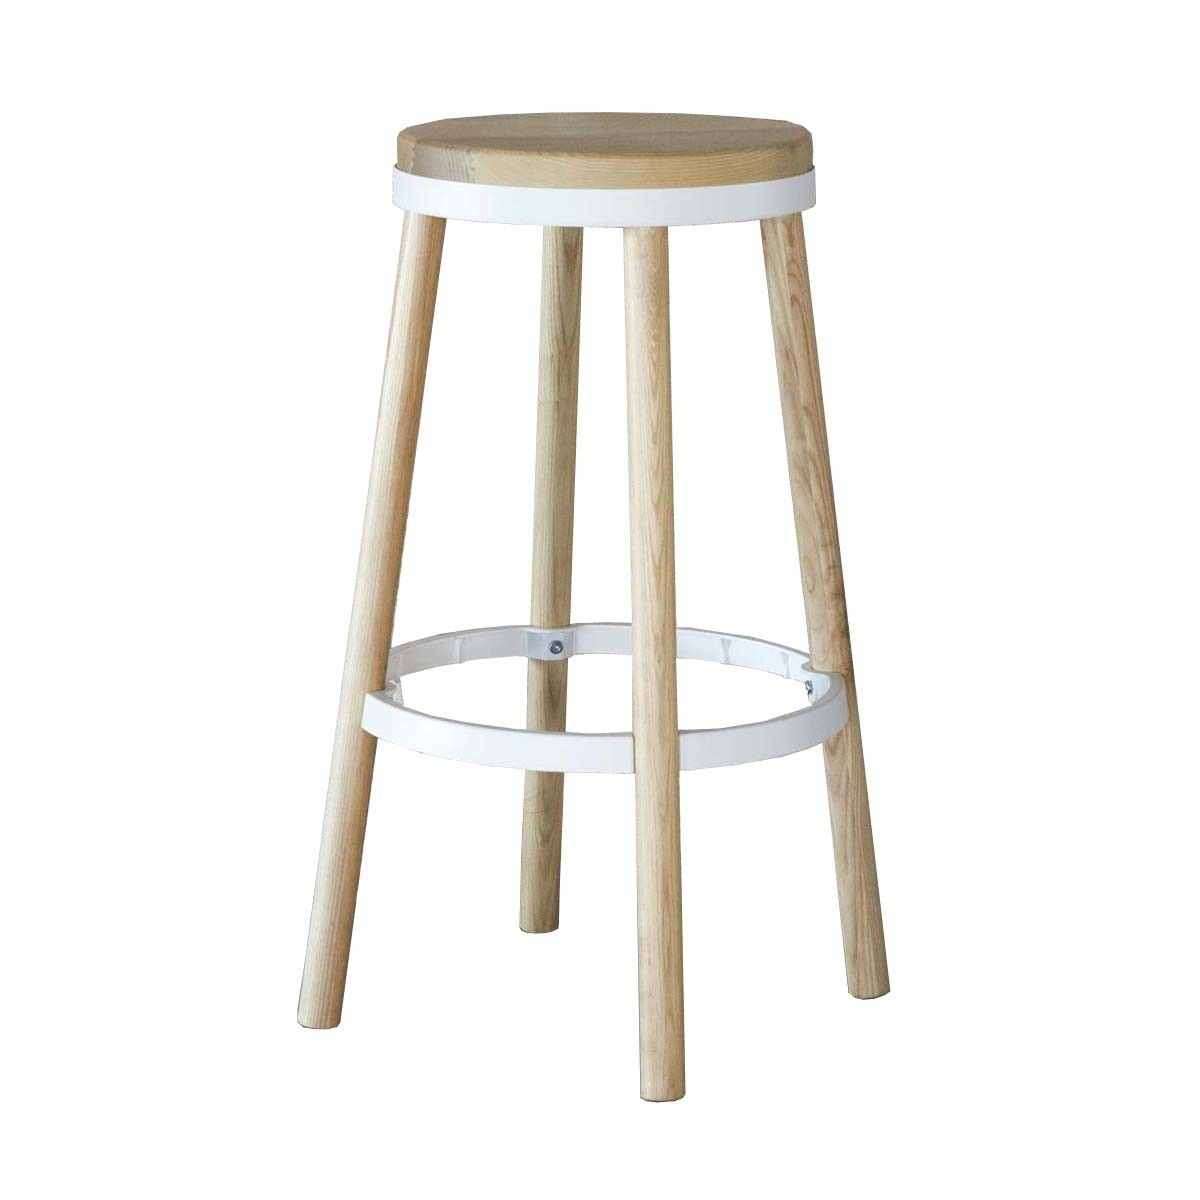 Life Interiors Oslo Bar Stool White Modern Bar Stools For Your Kitchen Online Or In Store Bar Stools Stool Industrial Bar Stools